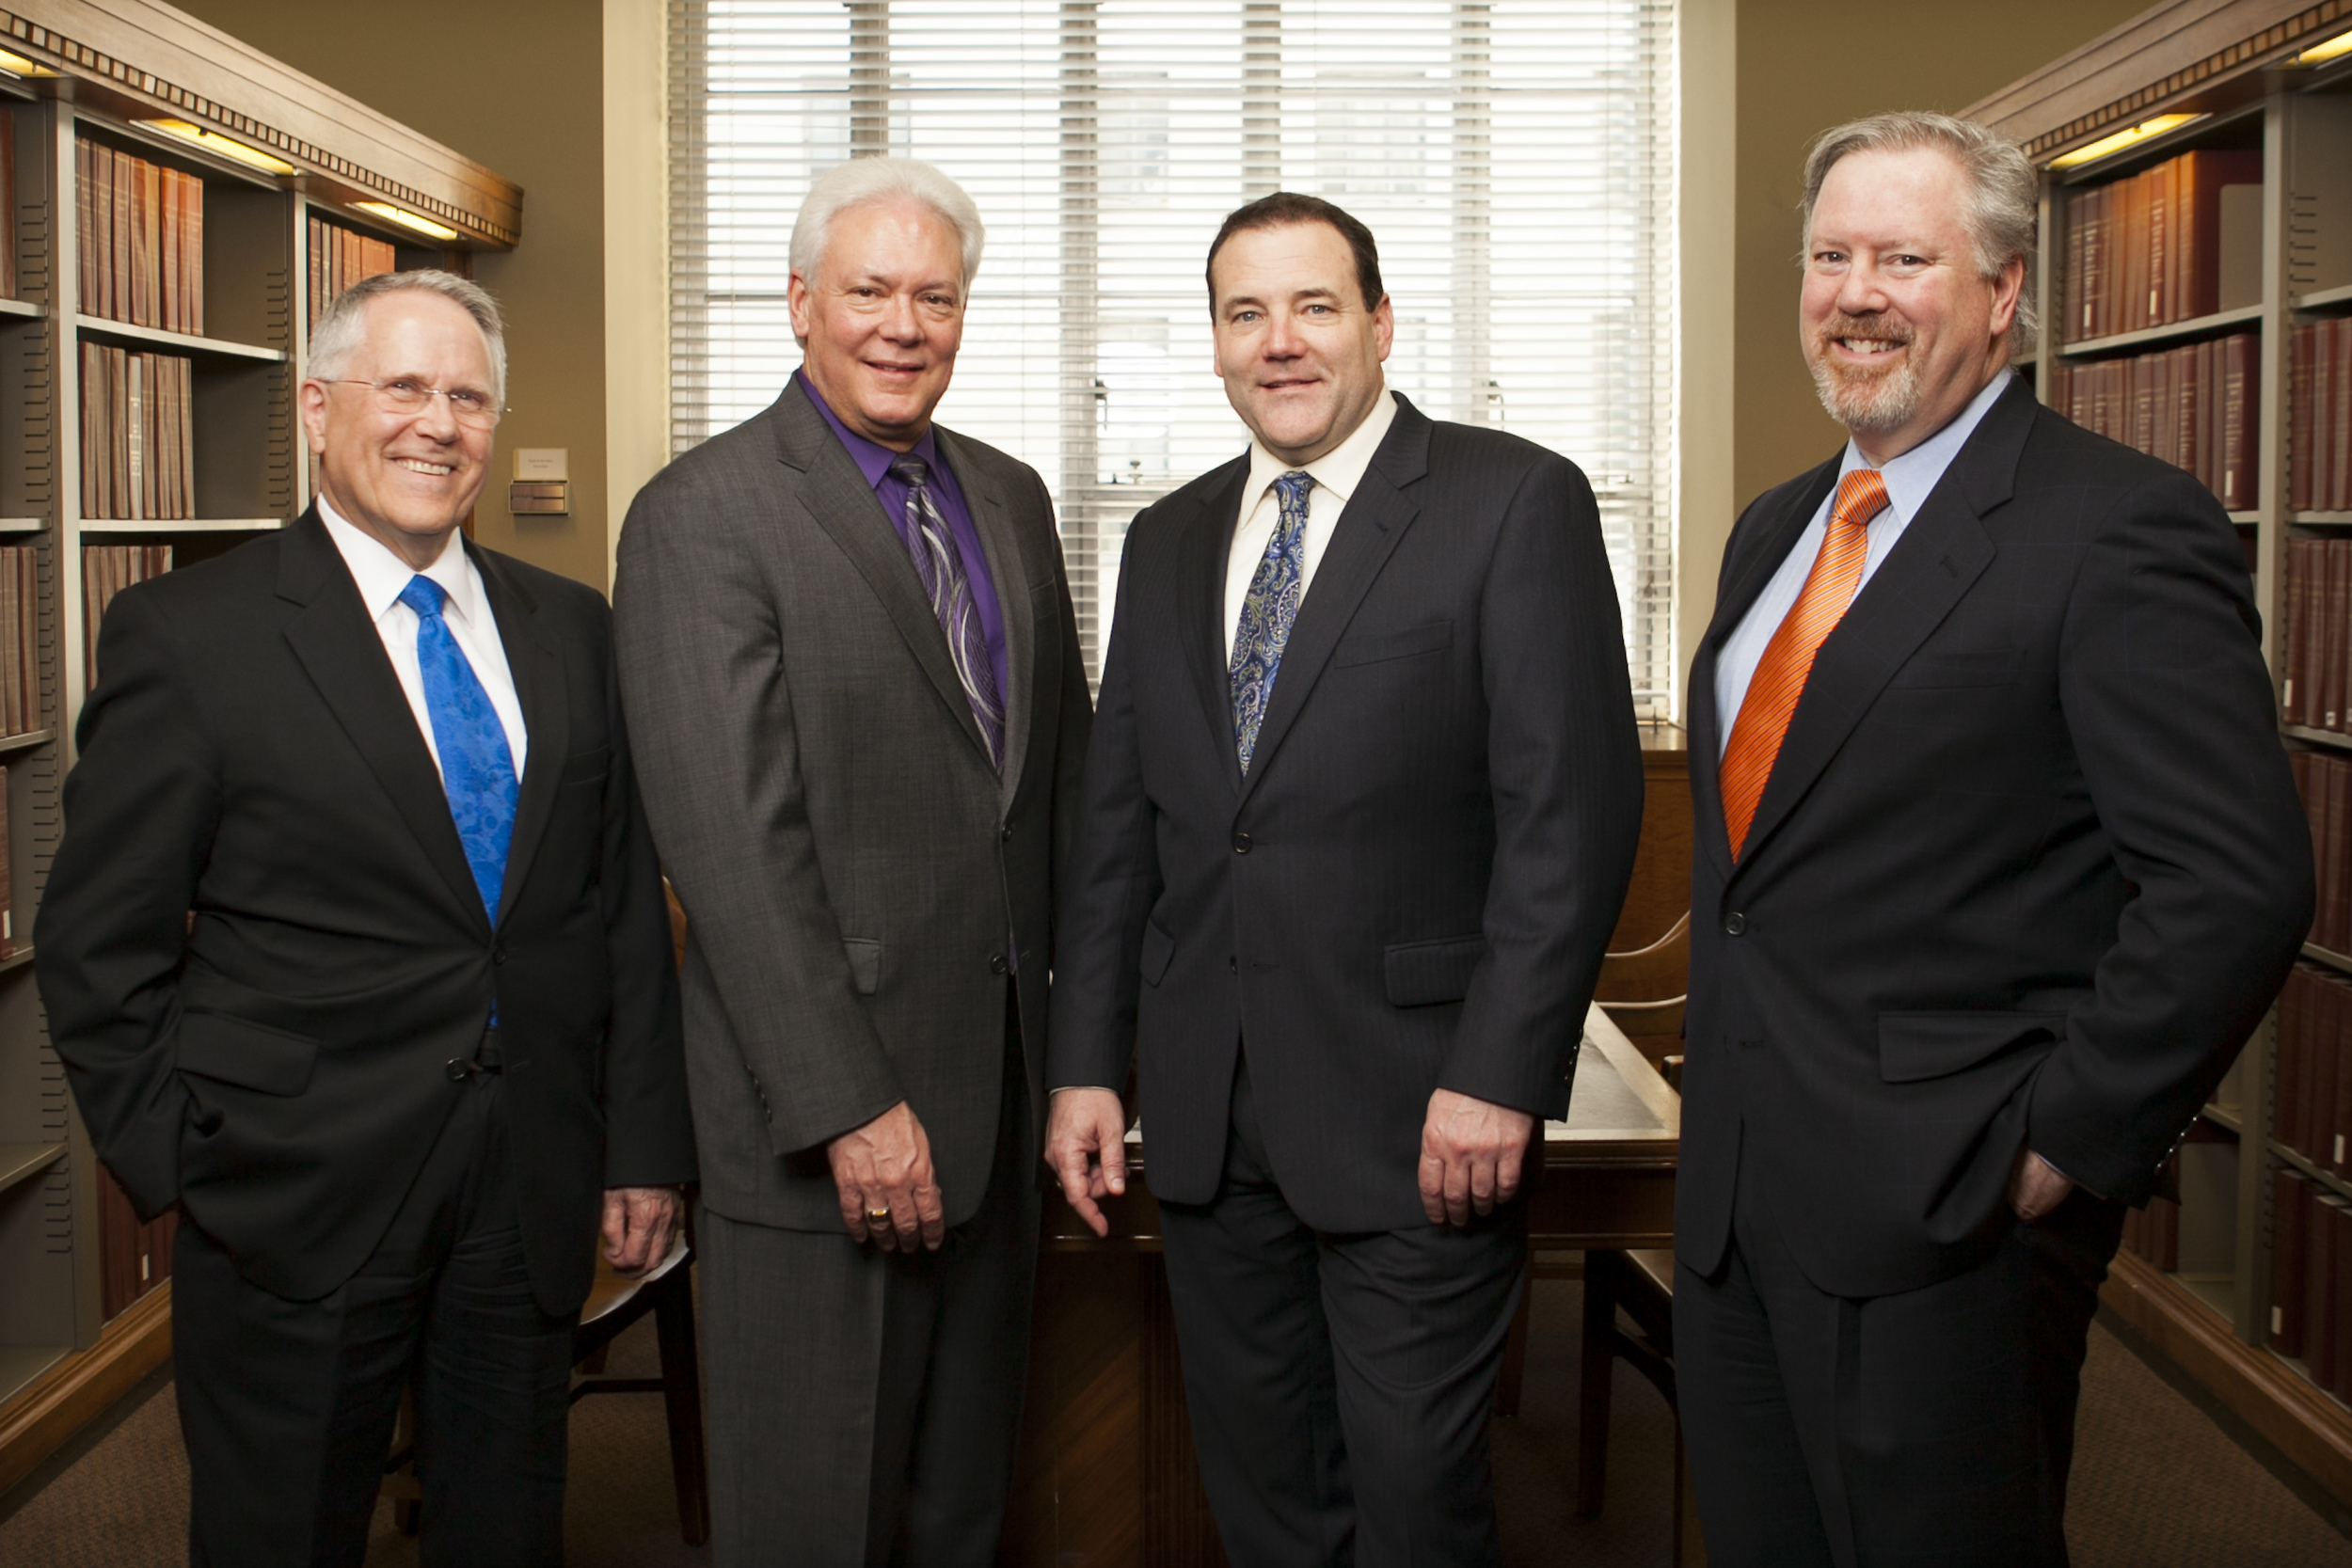 Fred Lang, Randy Berquist, A. Reese Madsen, Jr., and Peter Shelby the the DOJ Library.